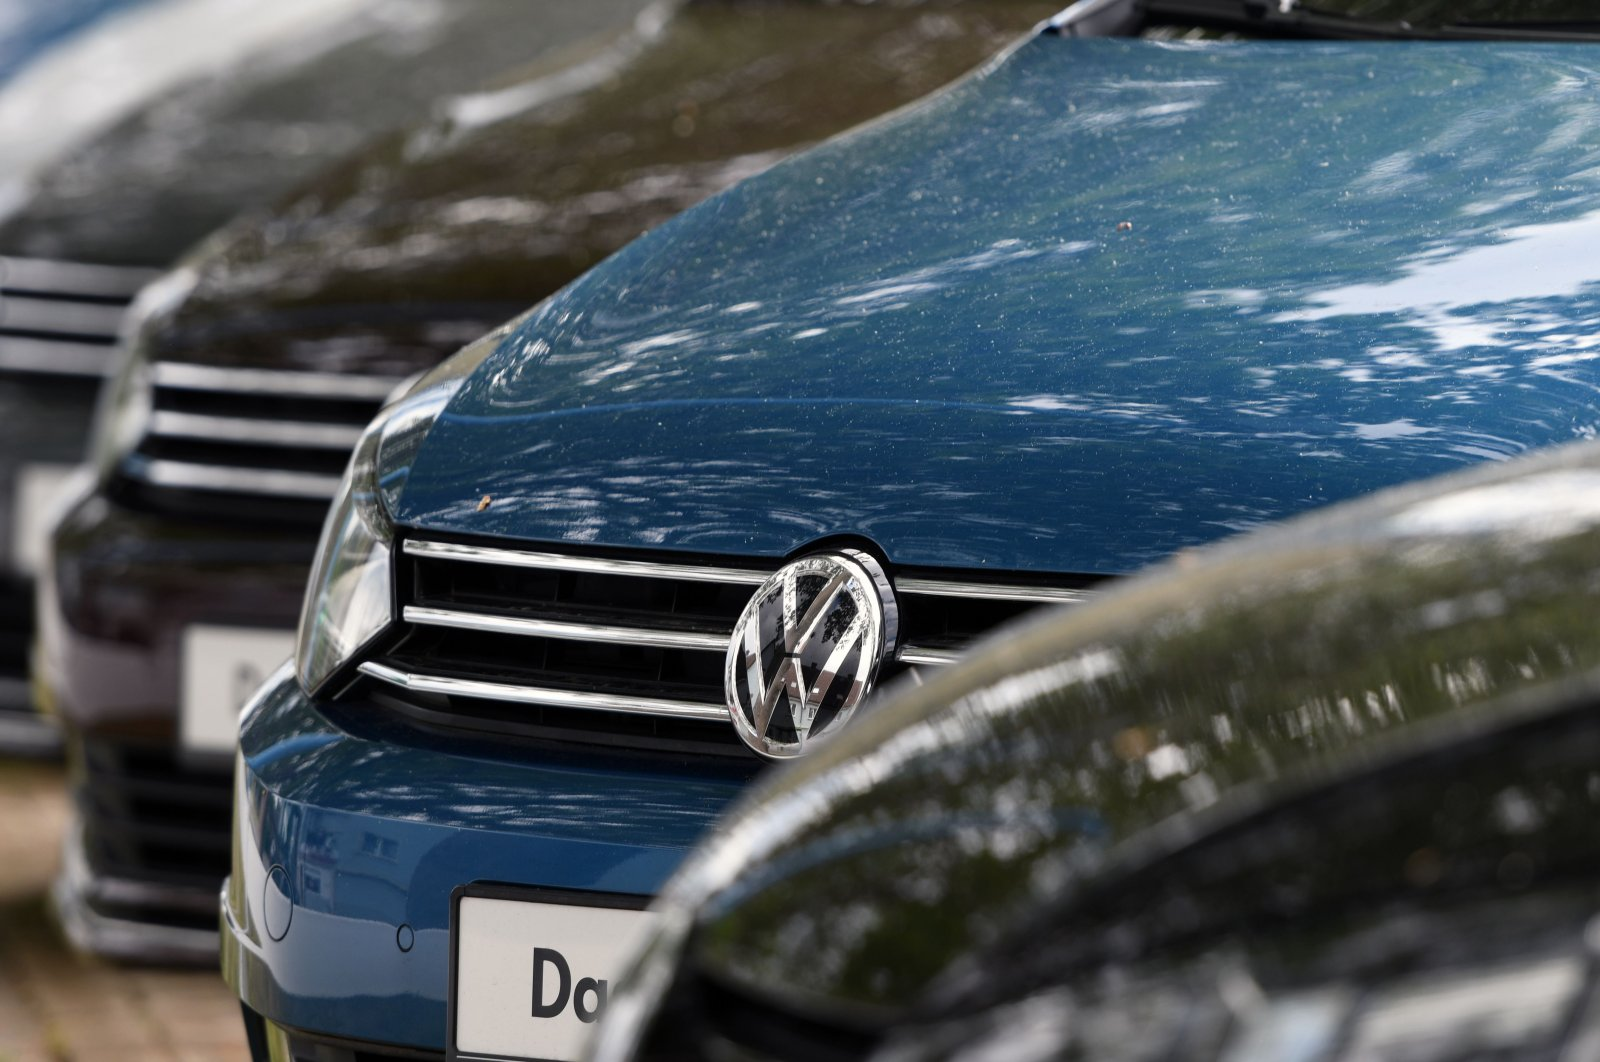 Used cars of German carmaker Volkswagen (VW) are for sale at a car dealer in Hamm, western Germany, May 25, 2020. (AFP Photo)